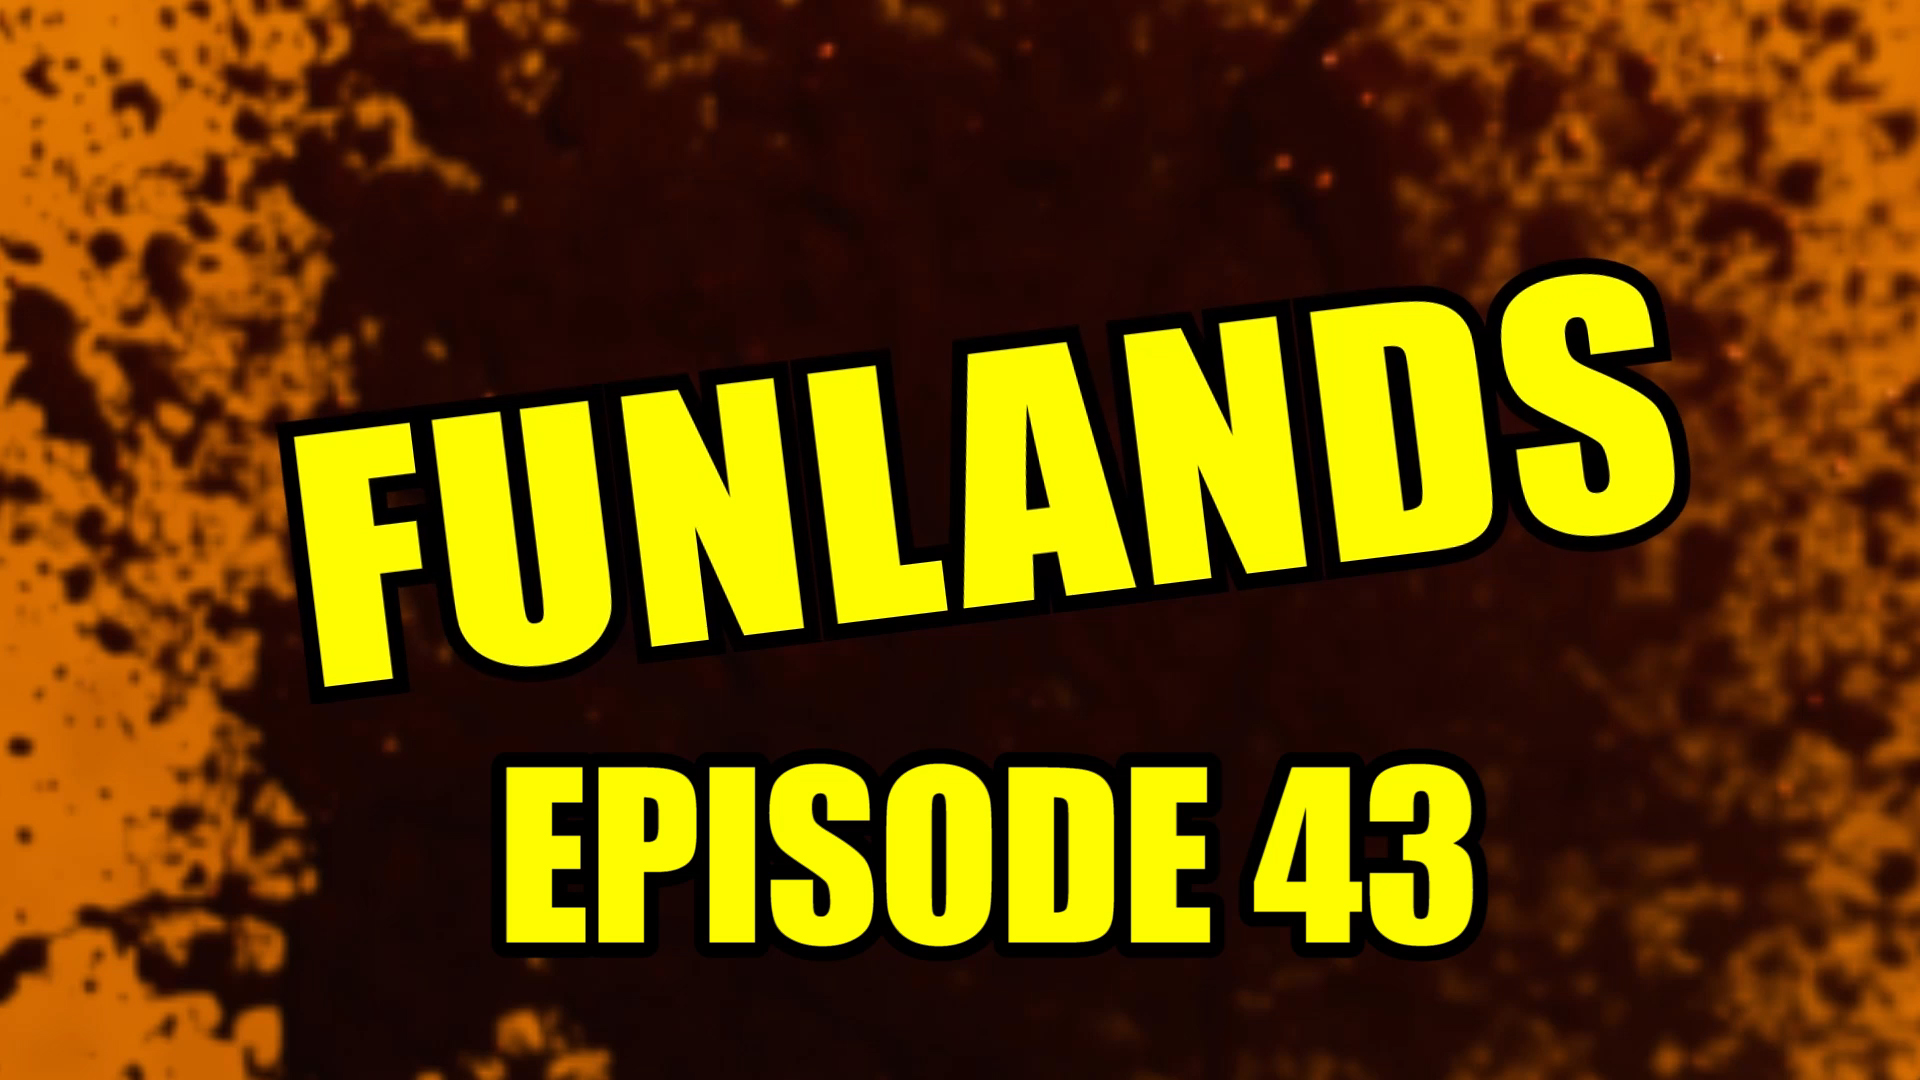 Funlands Episode 43.jpg